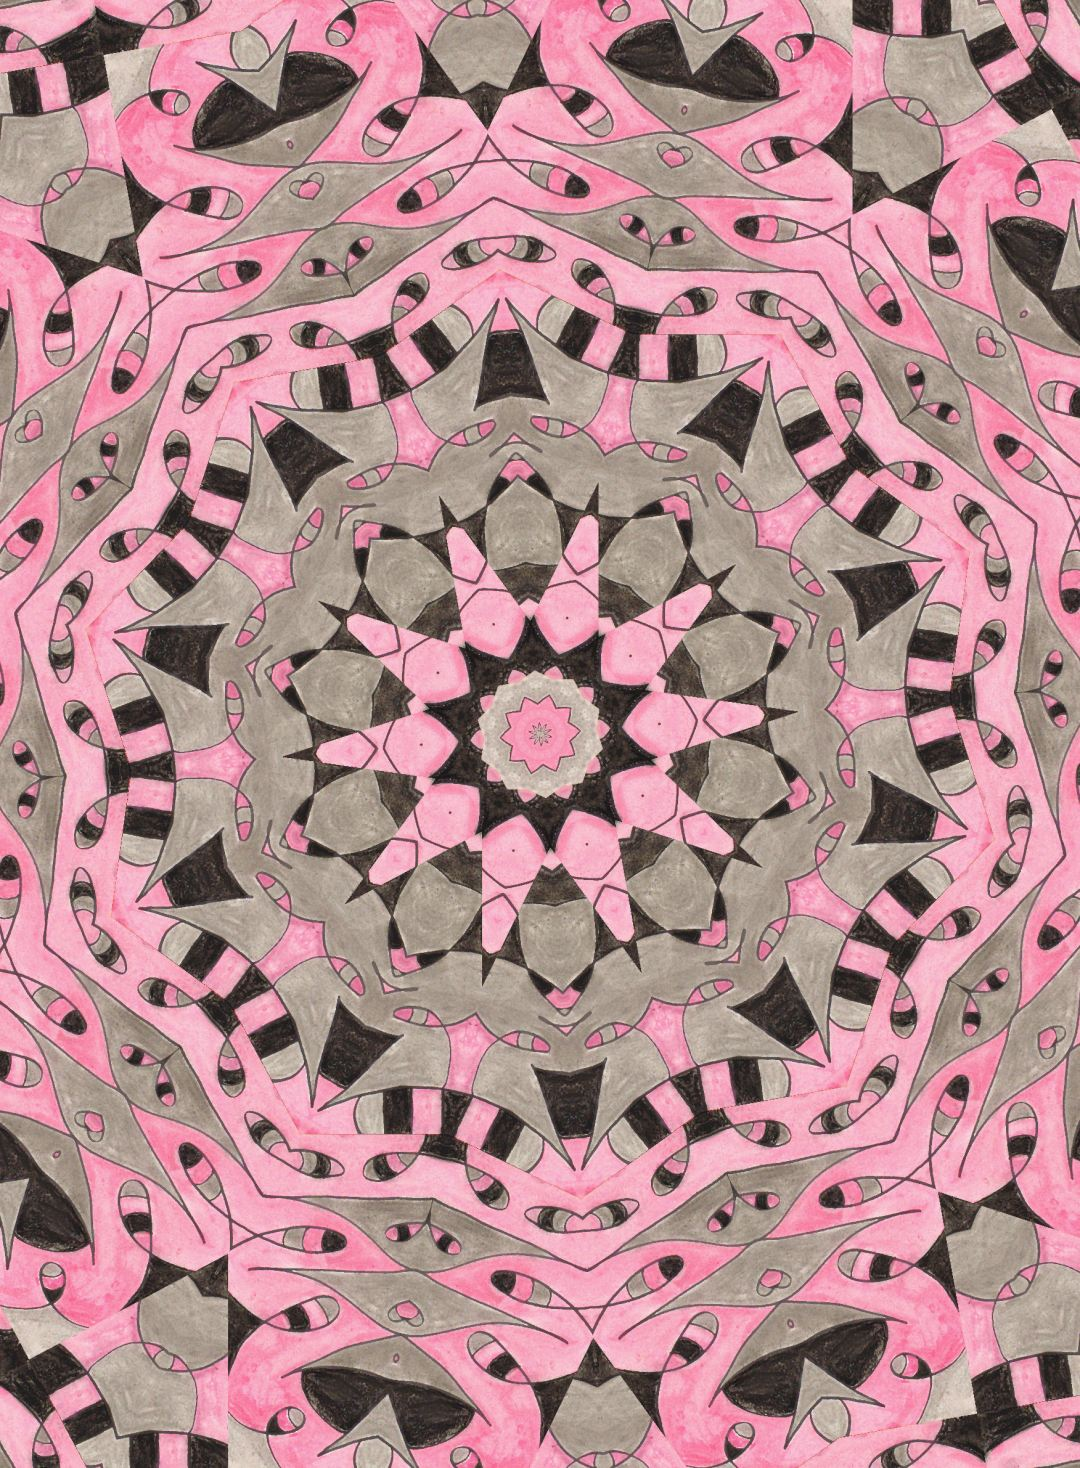 Pink Doily, abstract art by Audra Arr